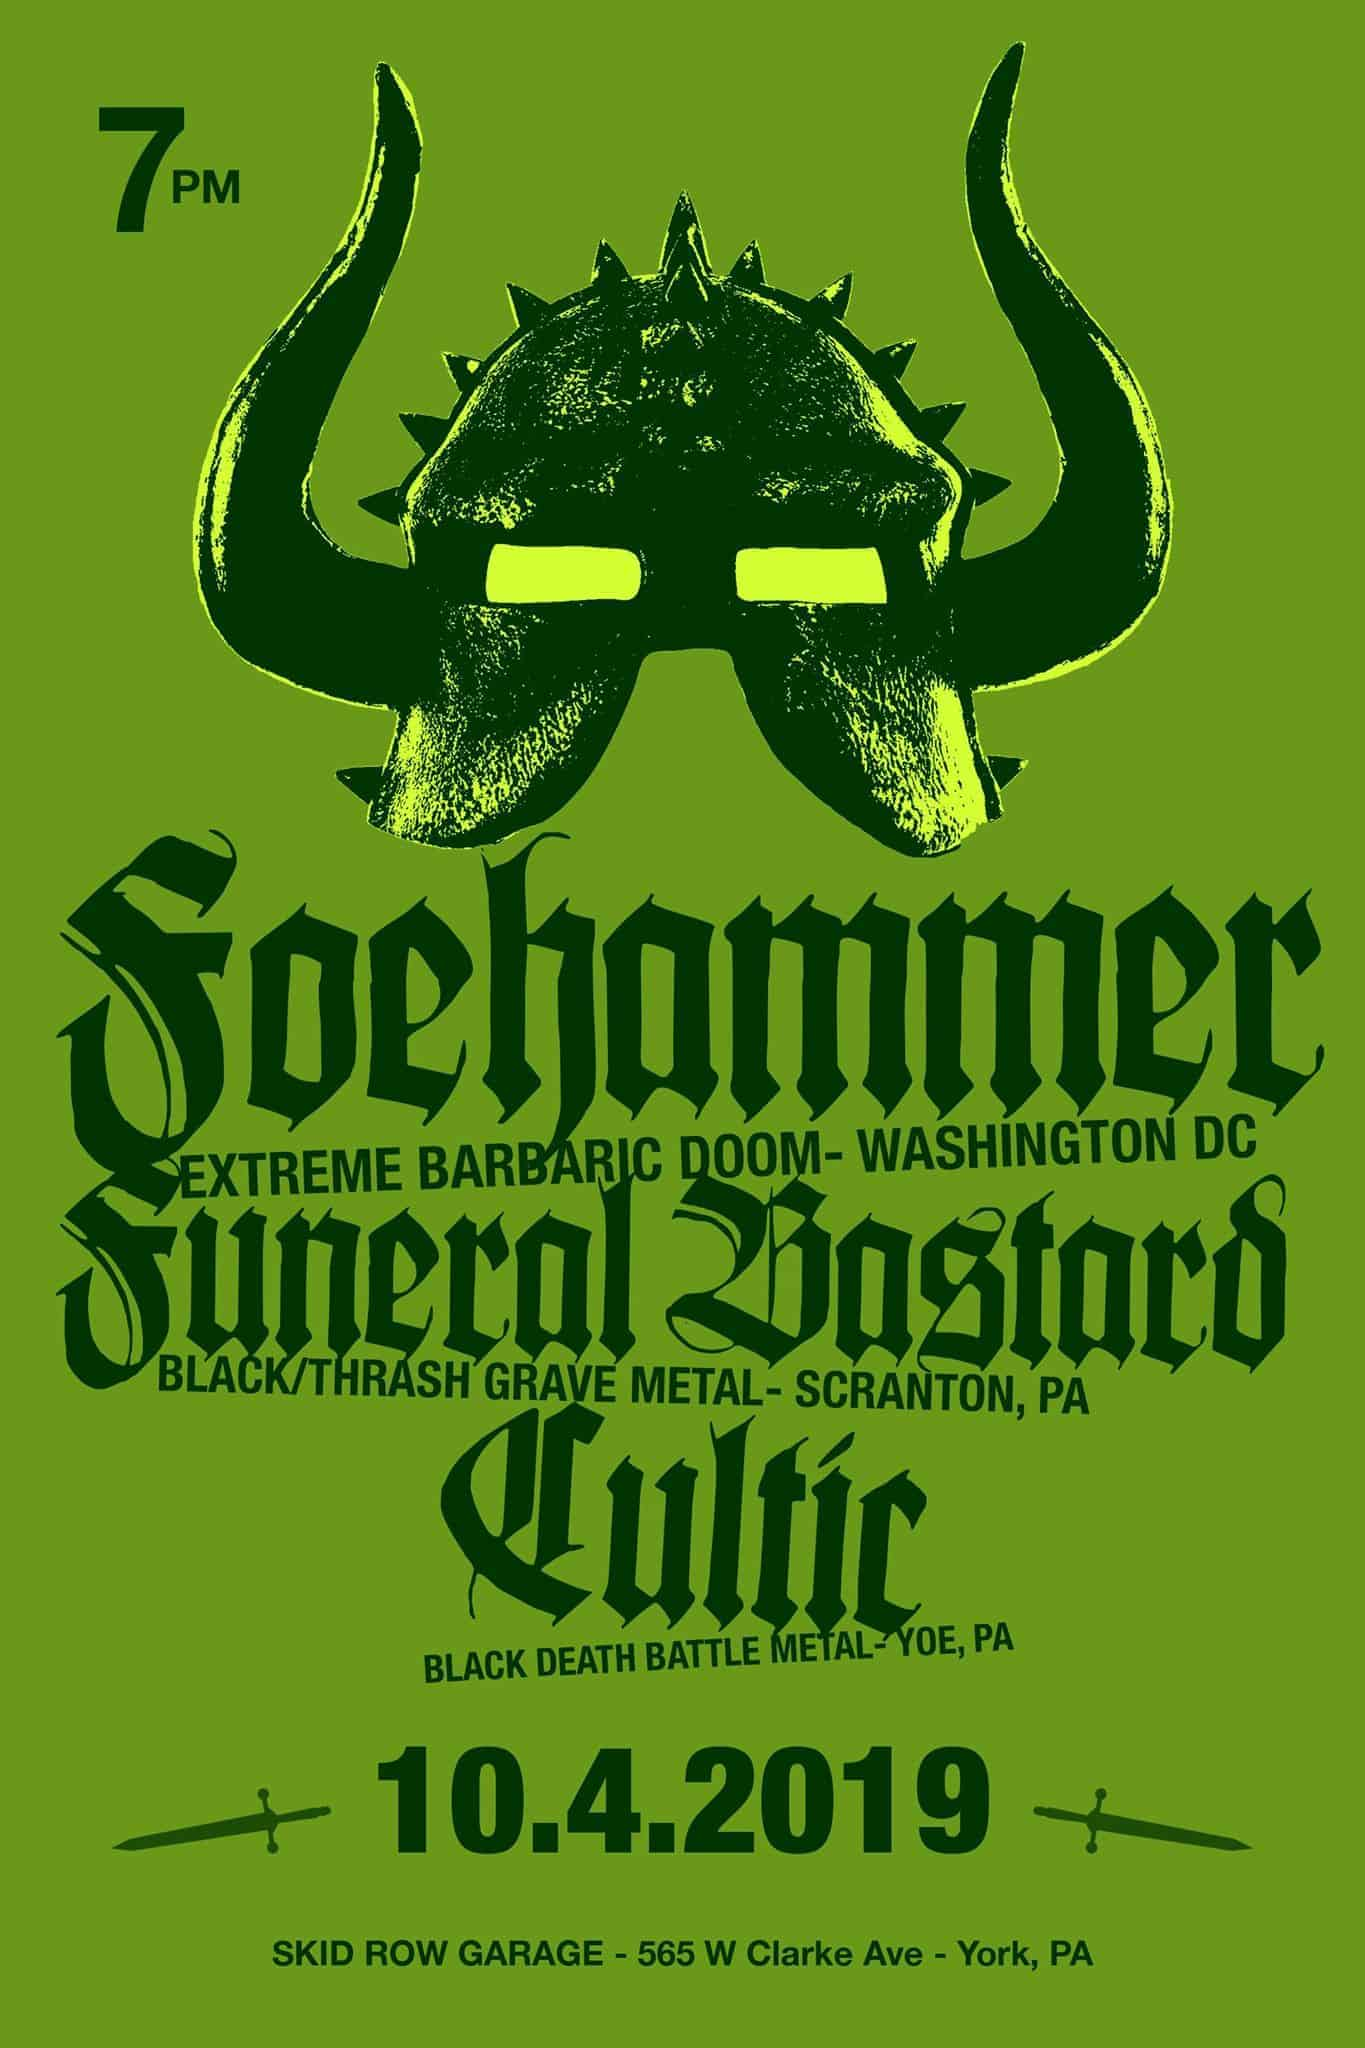 Cultic, Foehammer and Funeral Bastard Heavy Metal Show Flyer